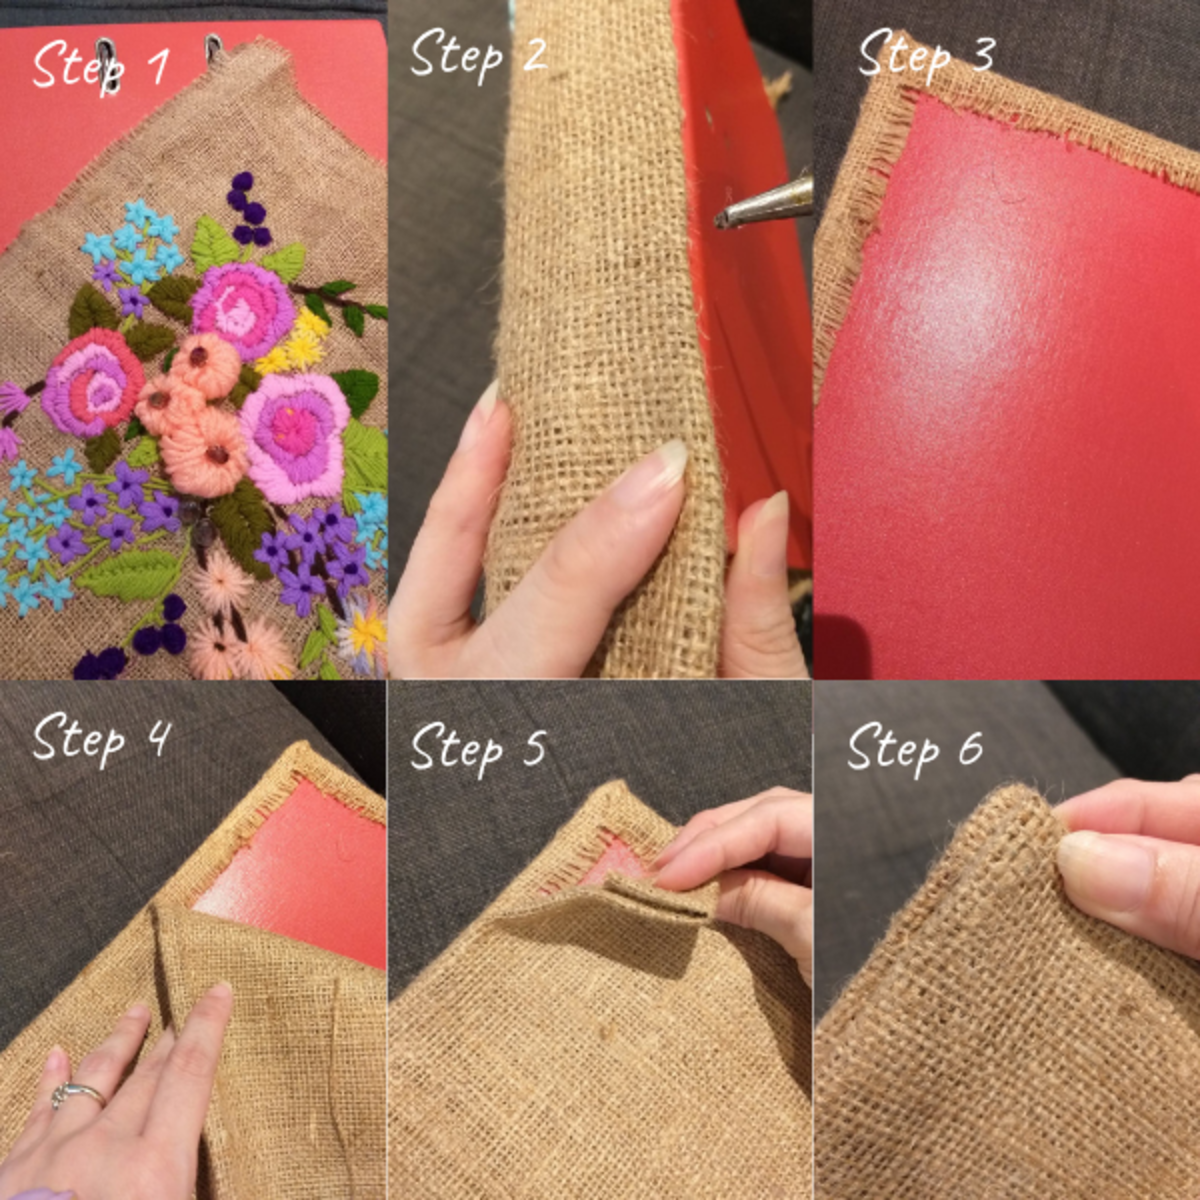 Cover the file folder with the finished embroidered fabric